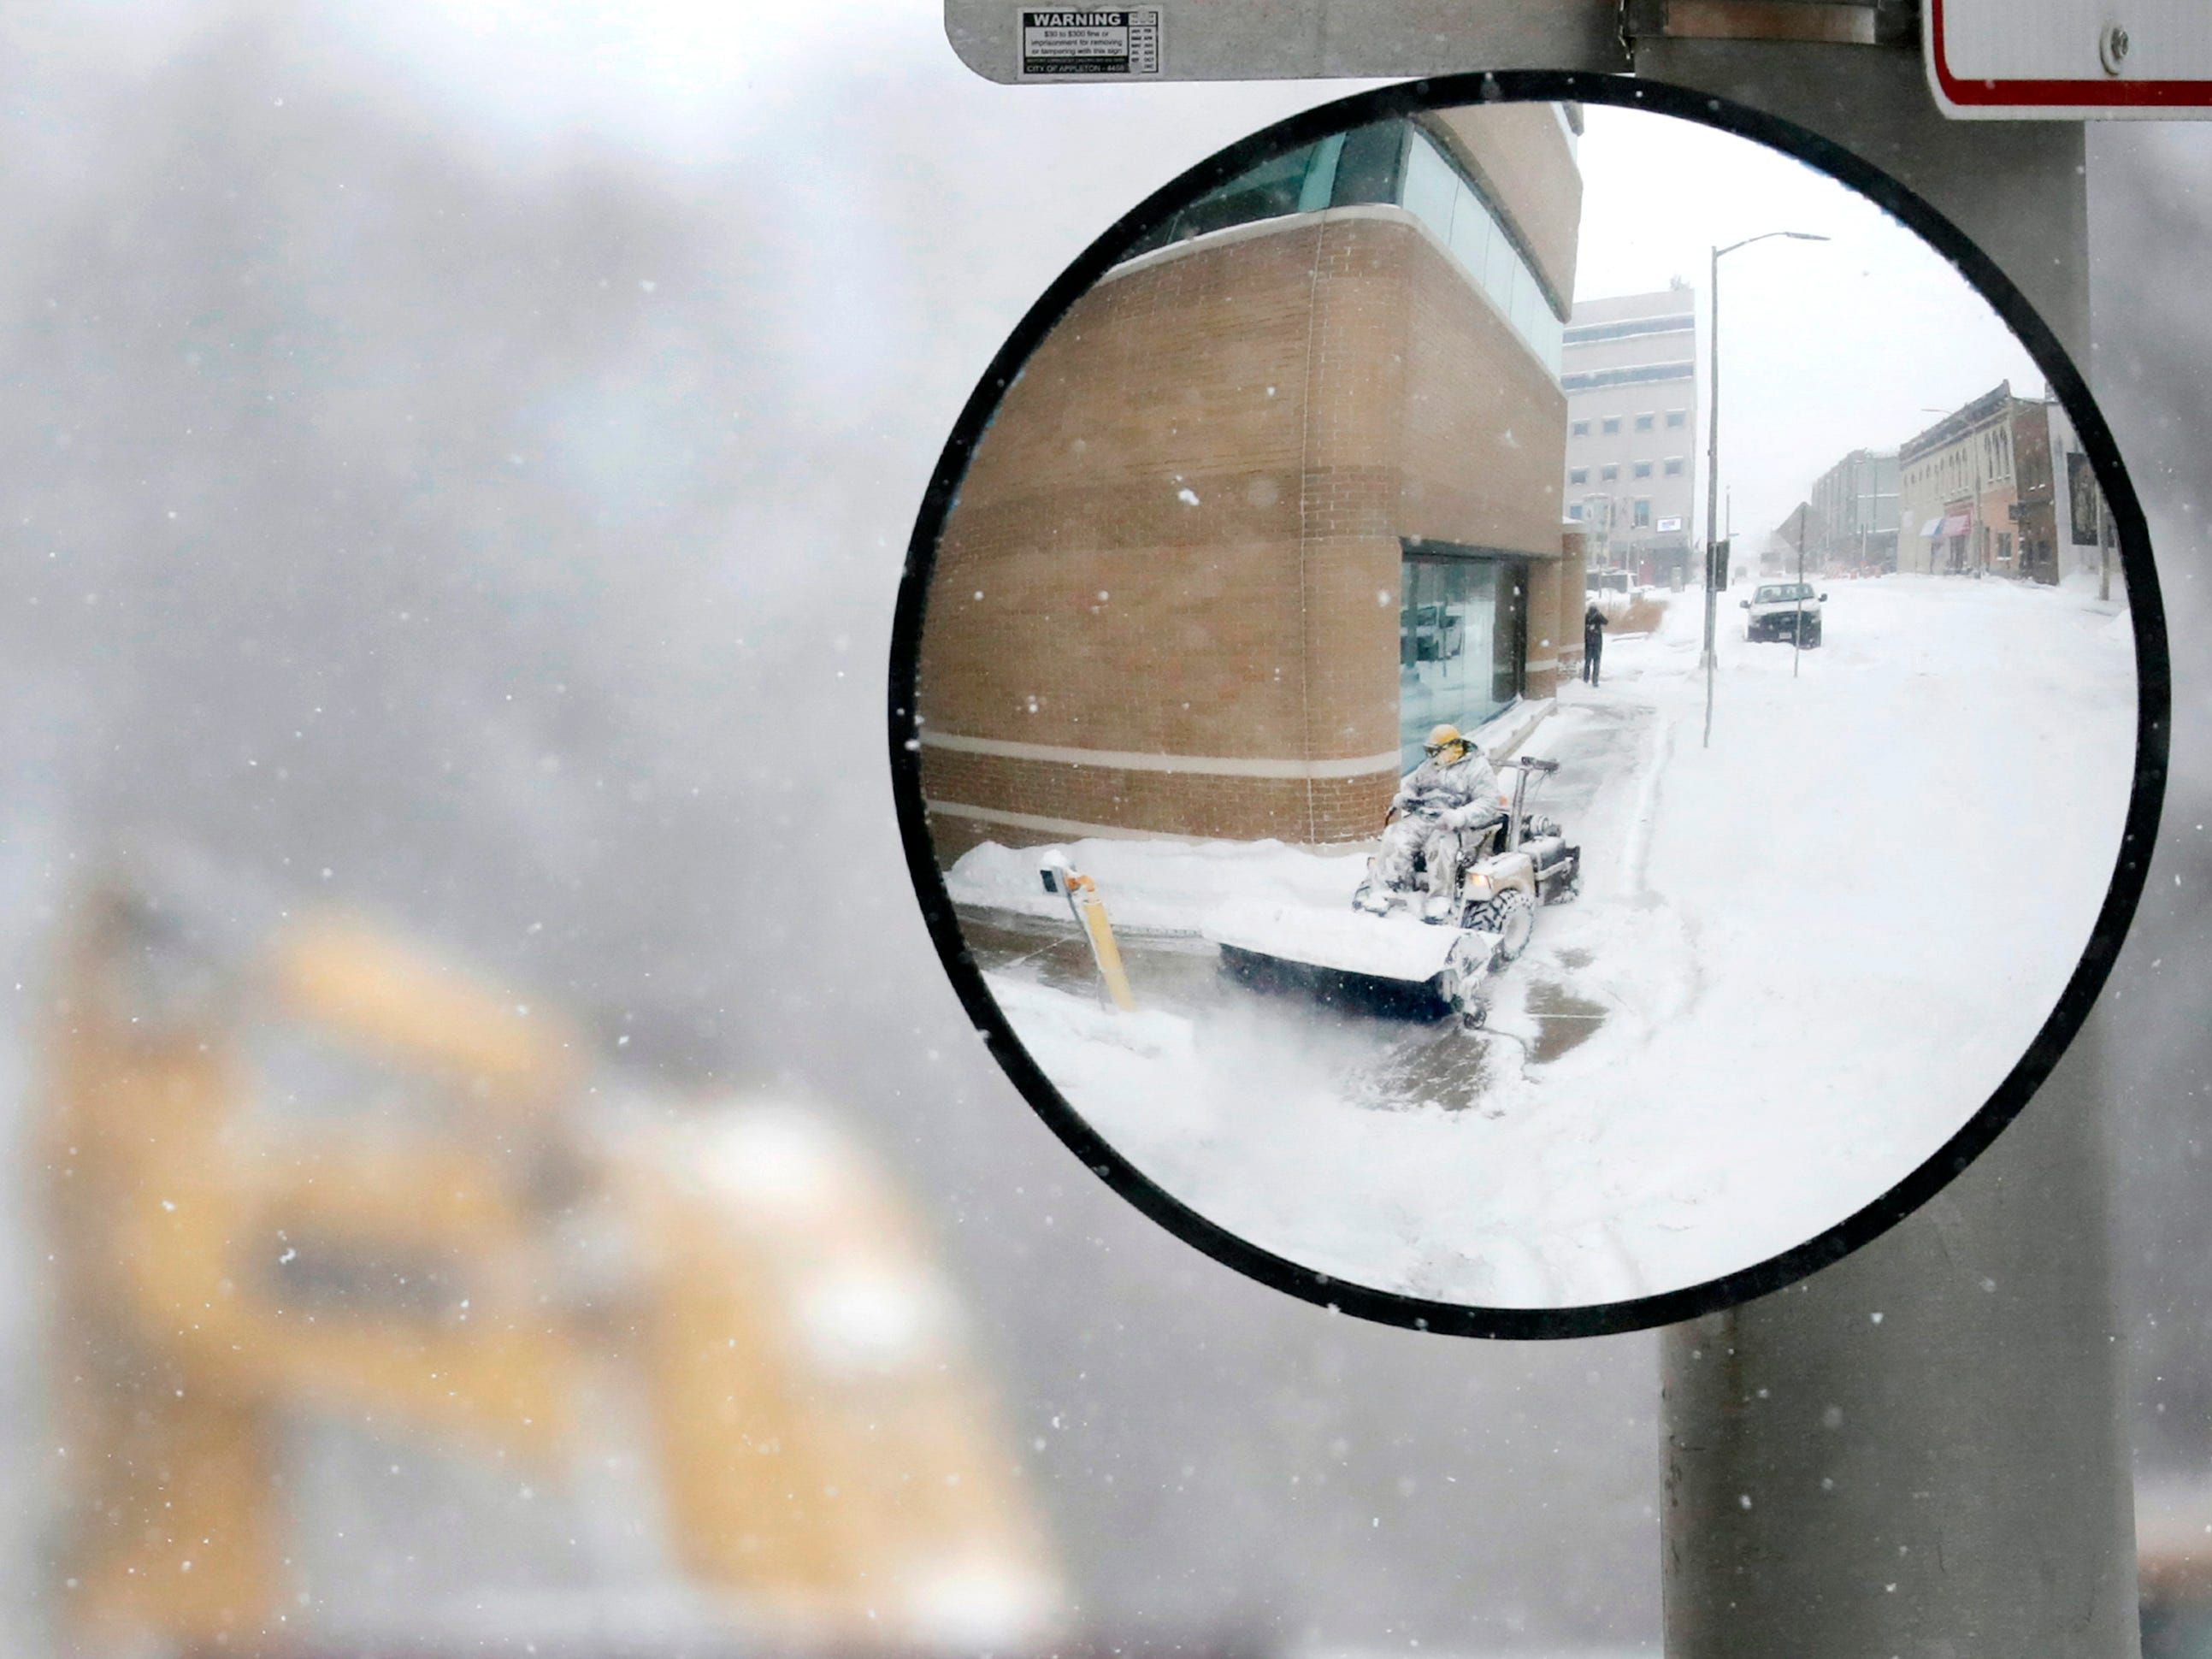 Jeff Kluever, with Pfefferle Management, is reflected in traffic safety mirror as he clears snow from a sidewalk in downtown Appleton, Wis.